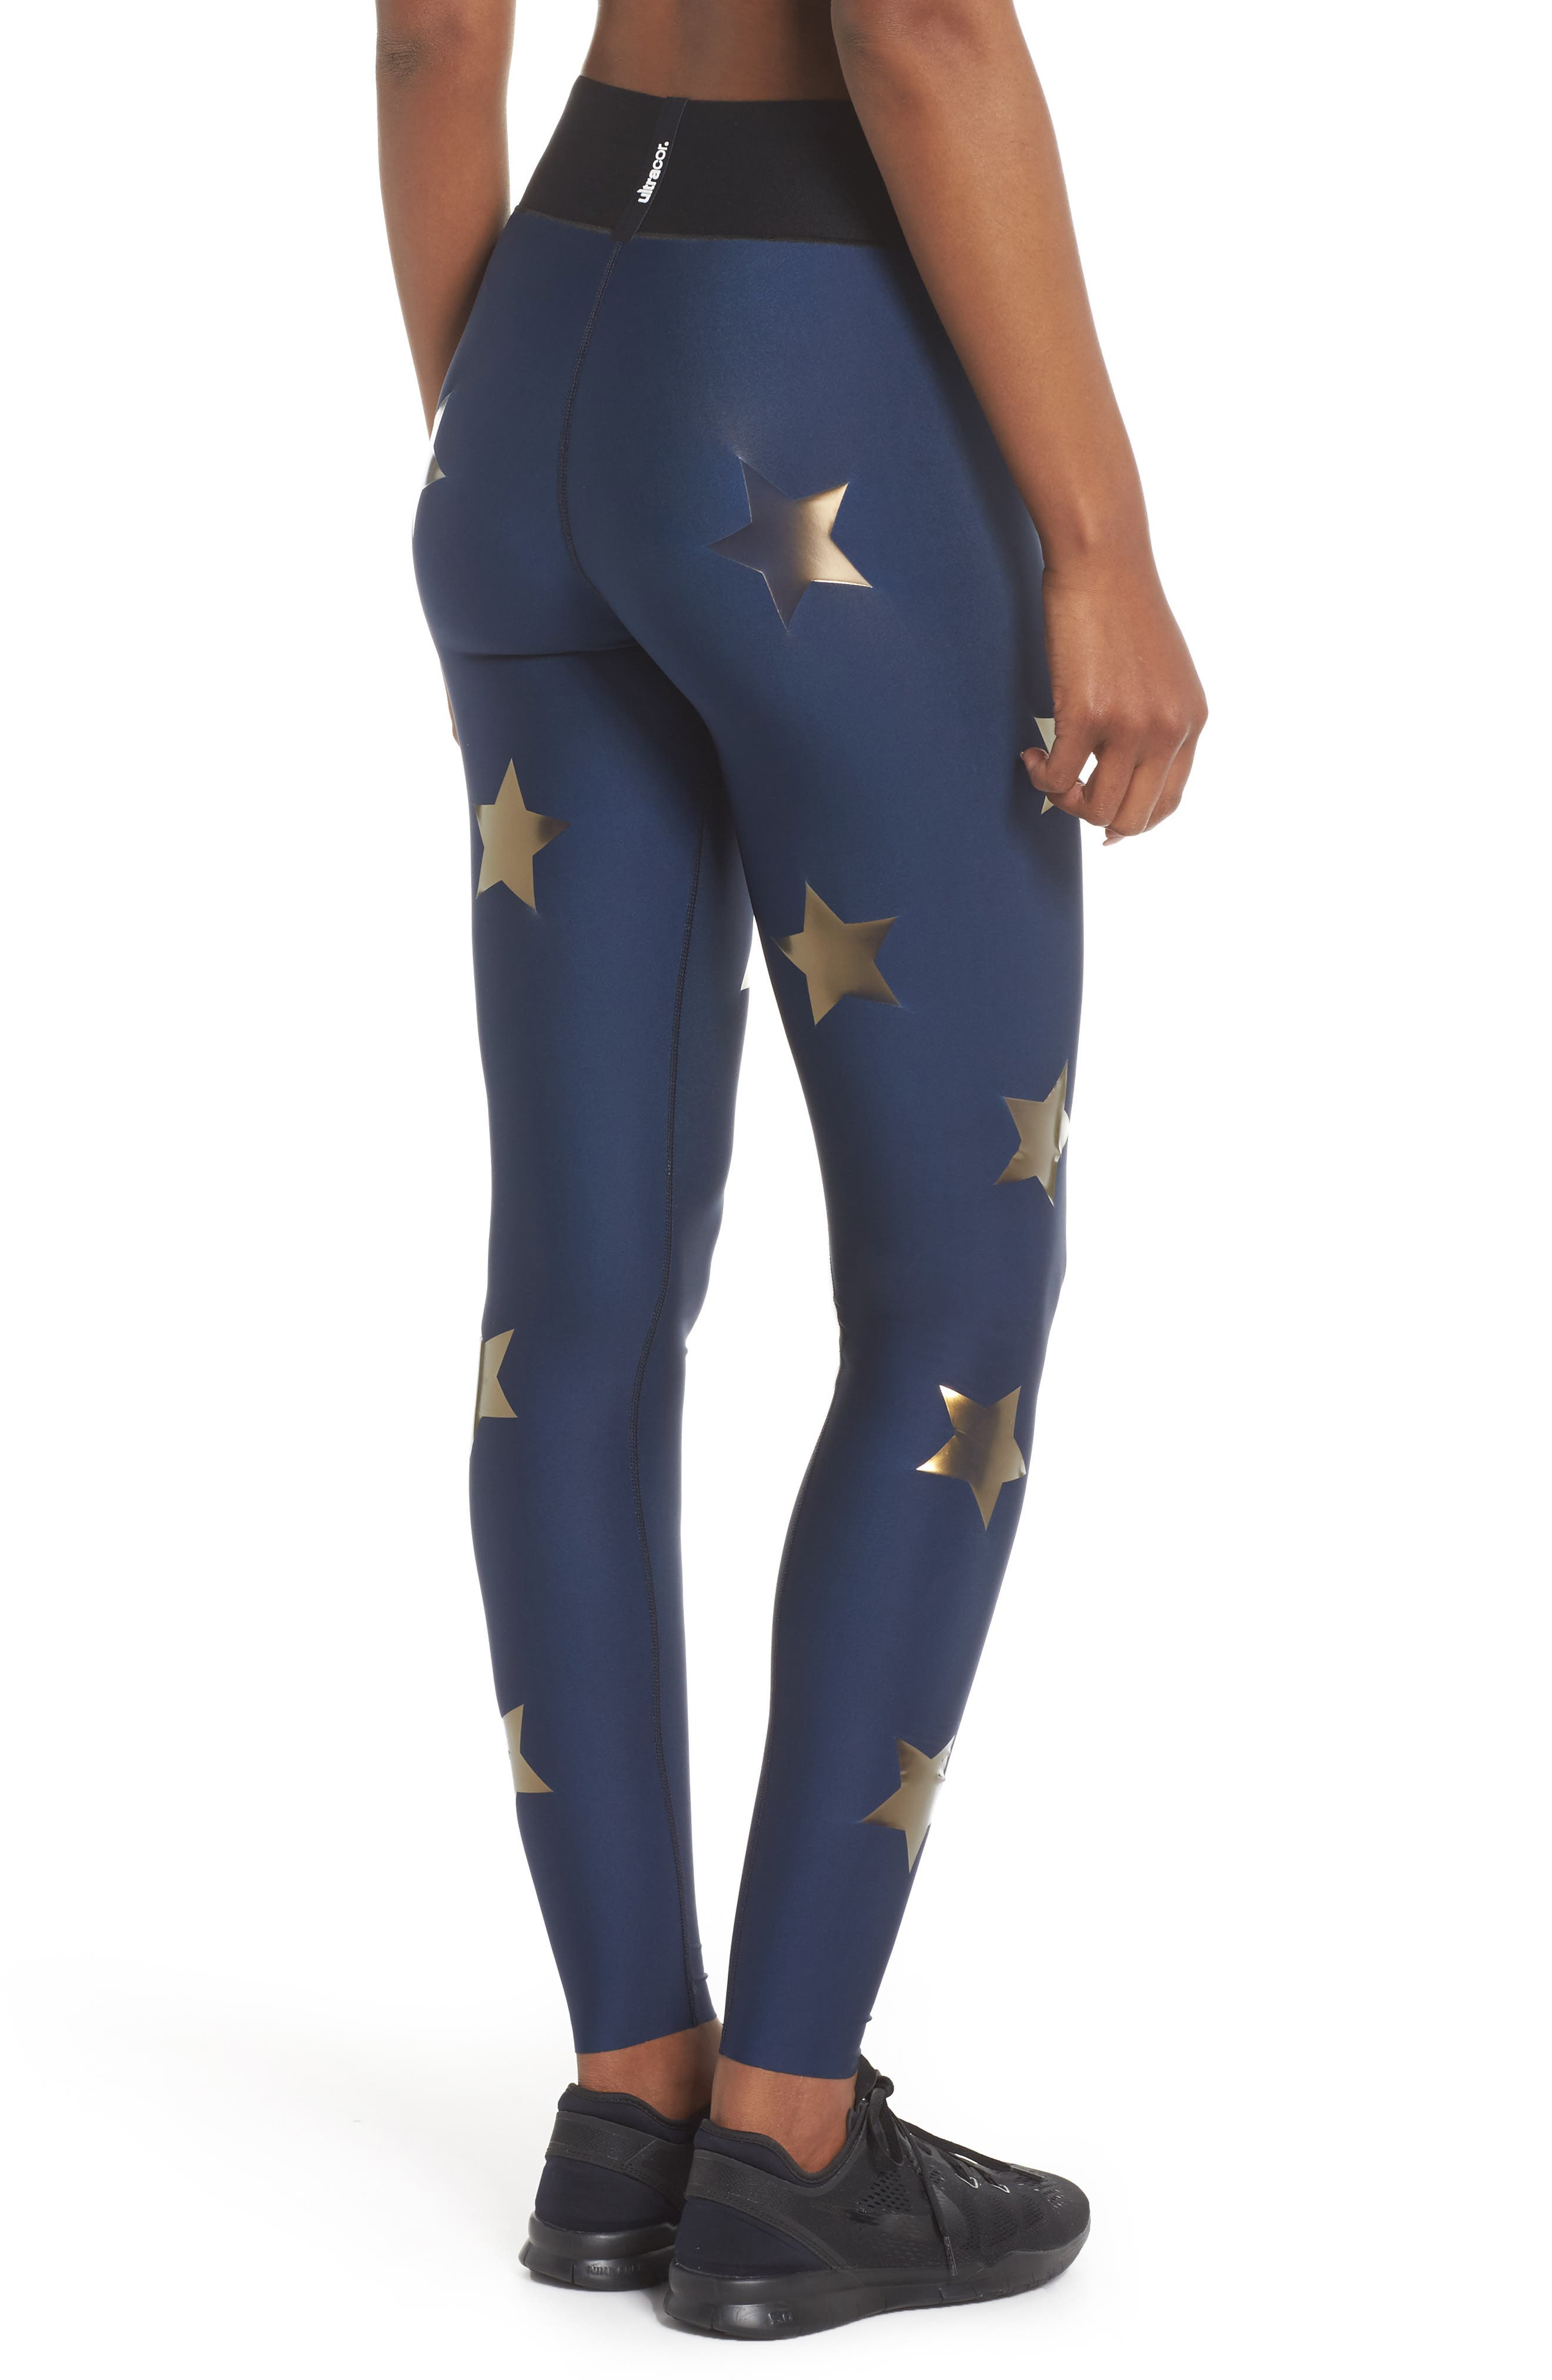 Lux Knockout Leggings,                             Alternate thumbnail 2, color,                             Obig - Oxford Blue Gold